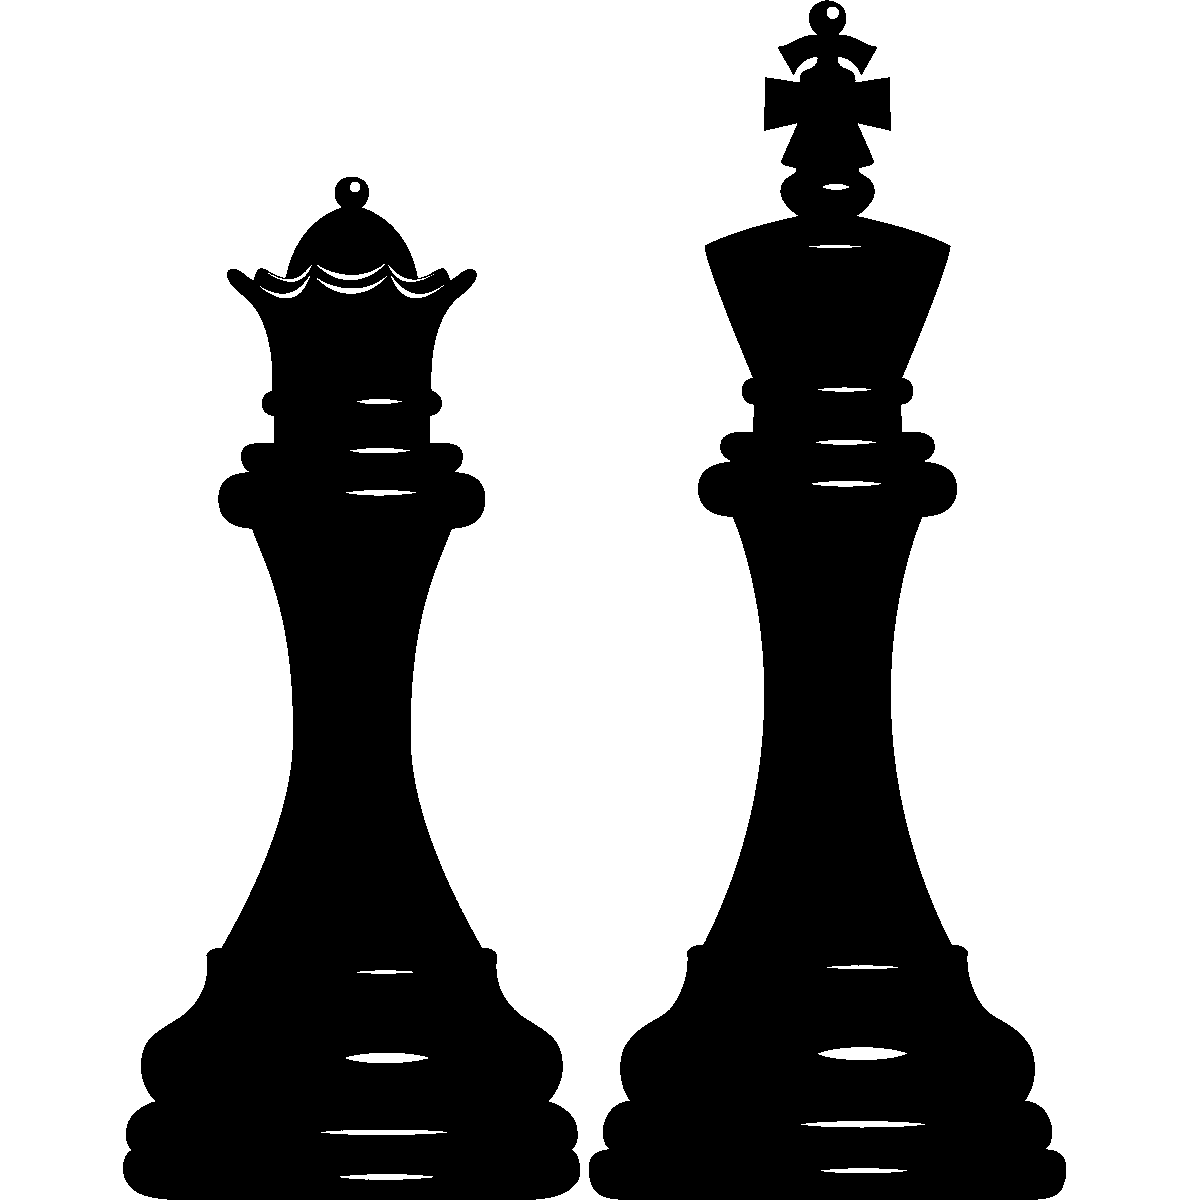 Checkers crown clipart picture royalty free library 28+ Collection of Chess Clipart Png | High quality, free cliparts ... picture royalty free library